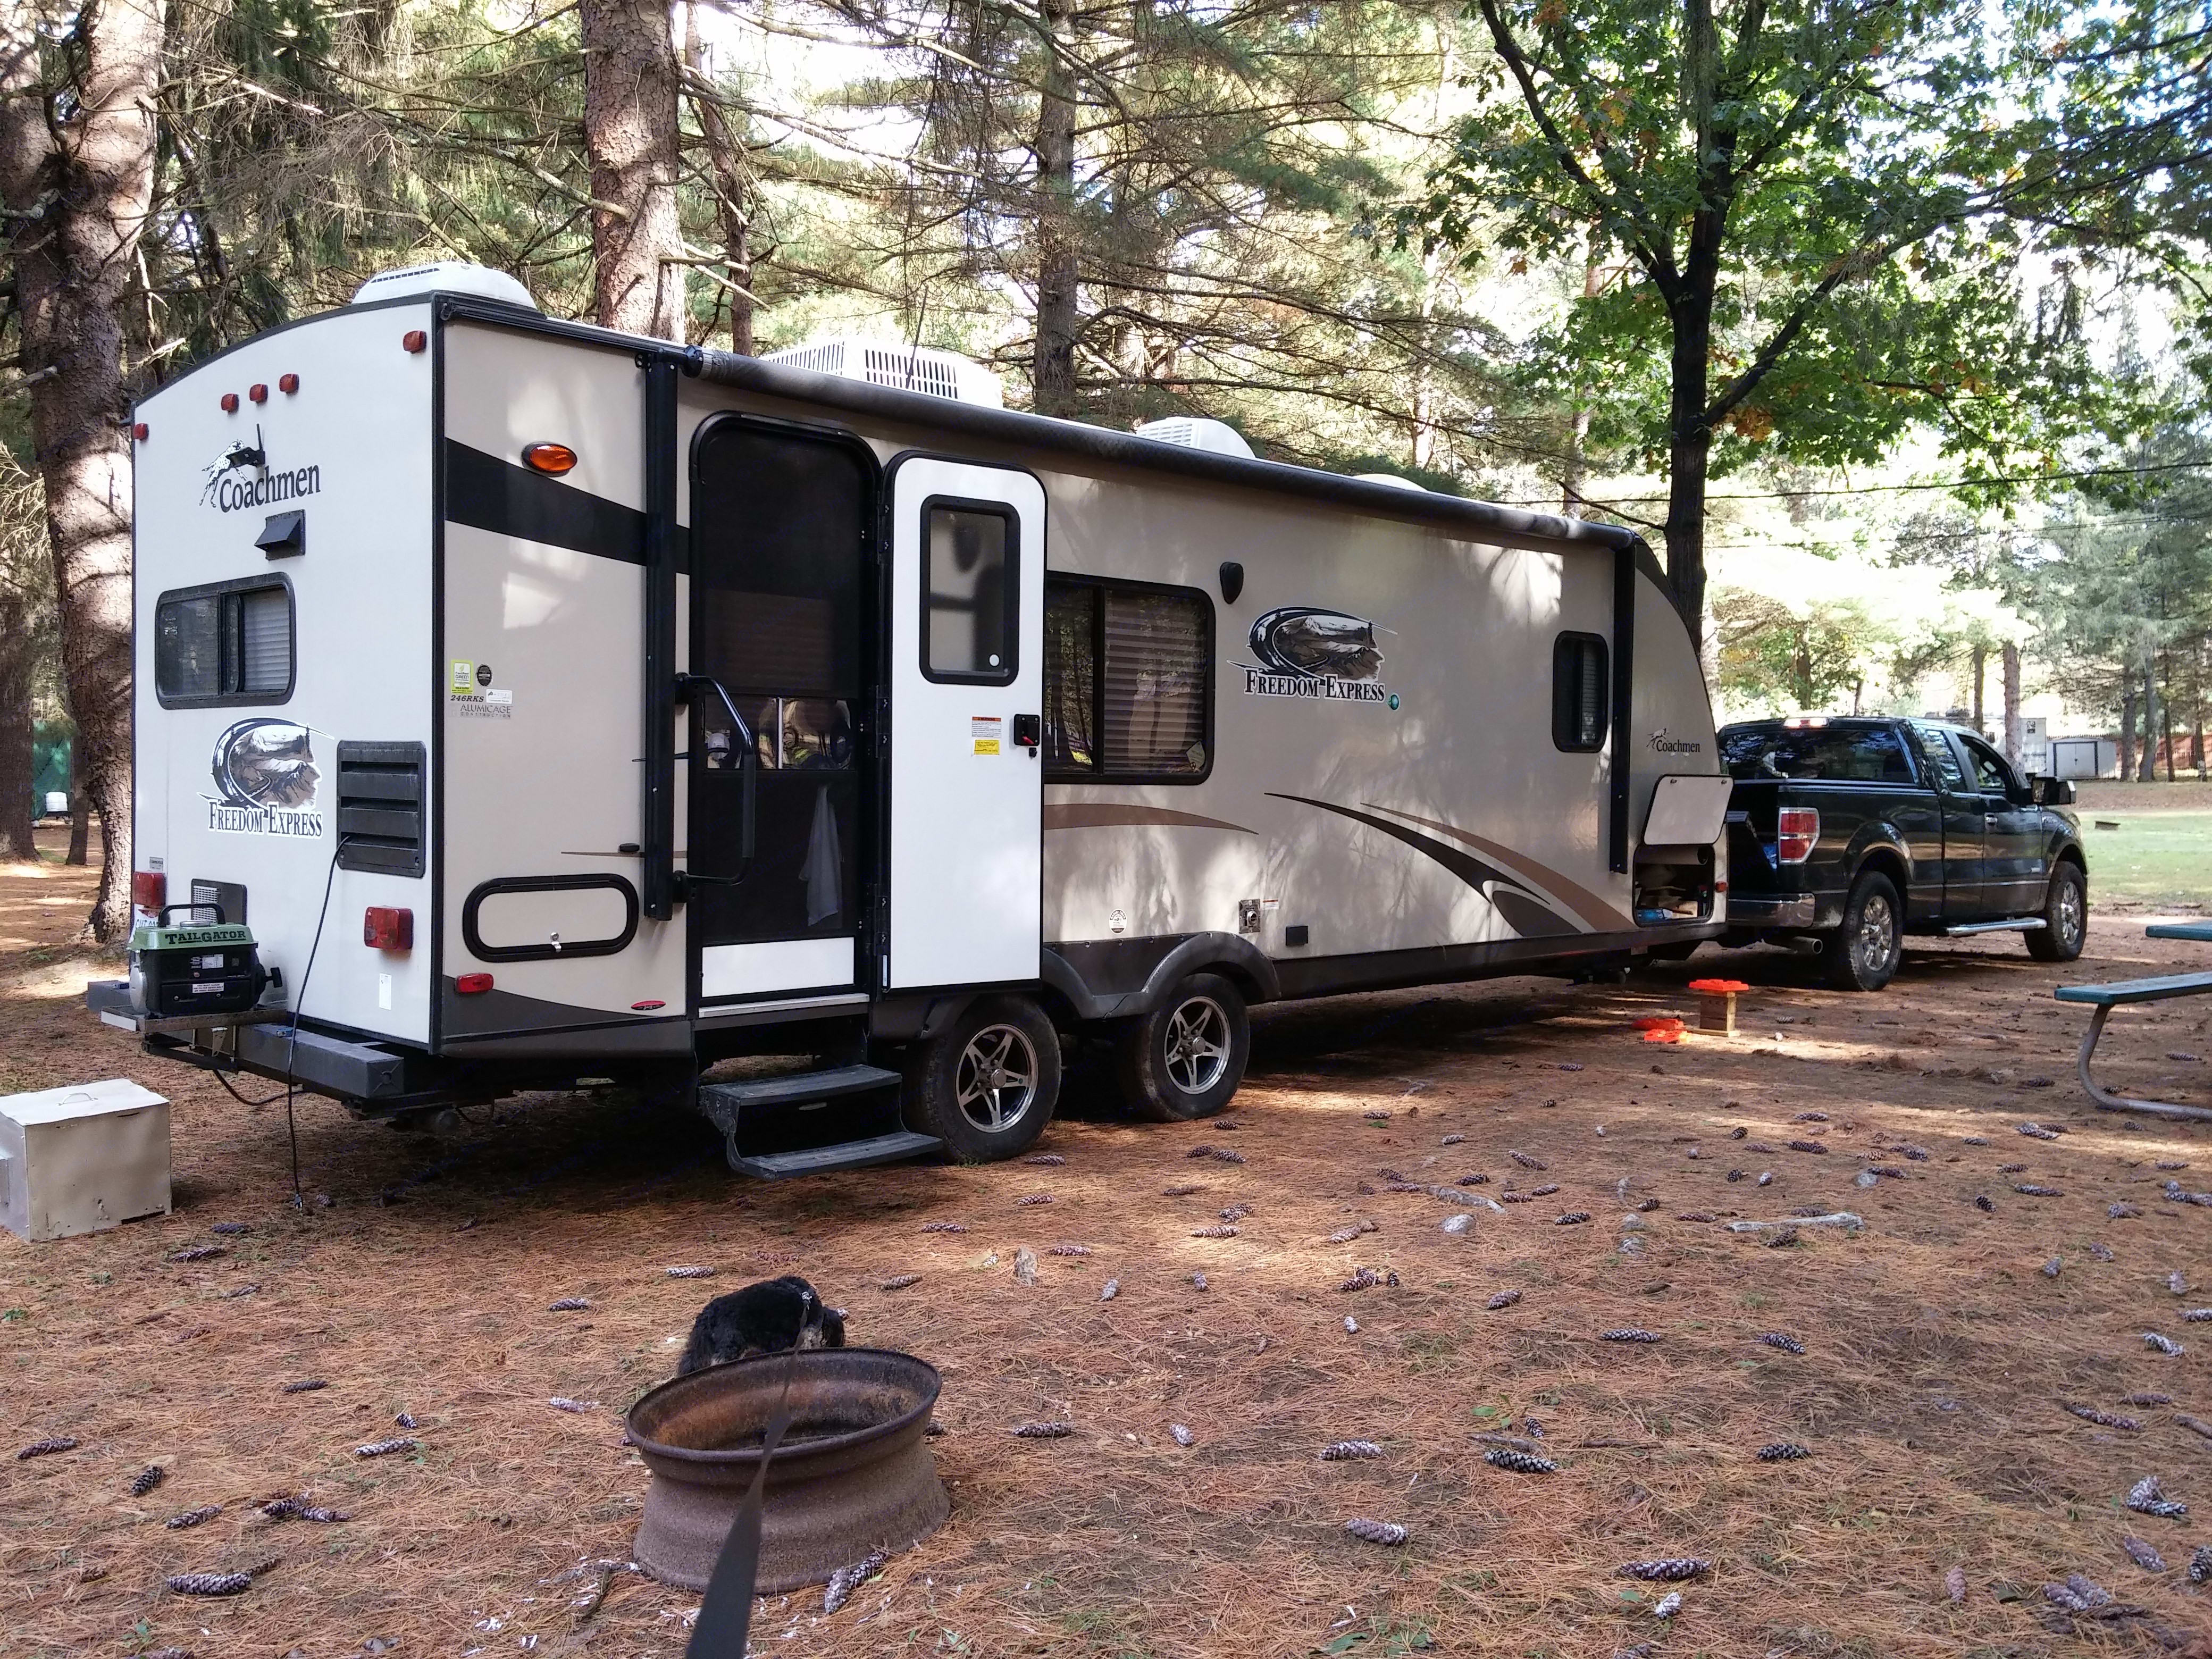 Great air conditioner and furnace. Three step entrance. Dessert of Maine, Freeport, Maine. Coachmen Freedom Express 2013